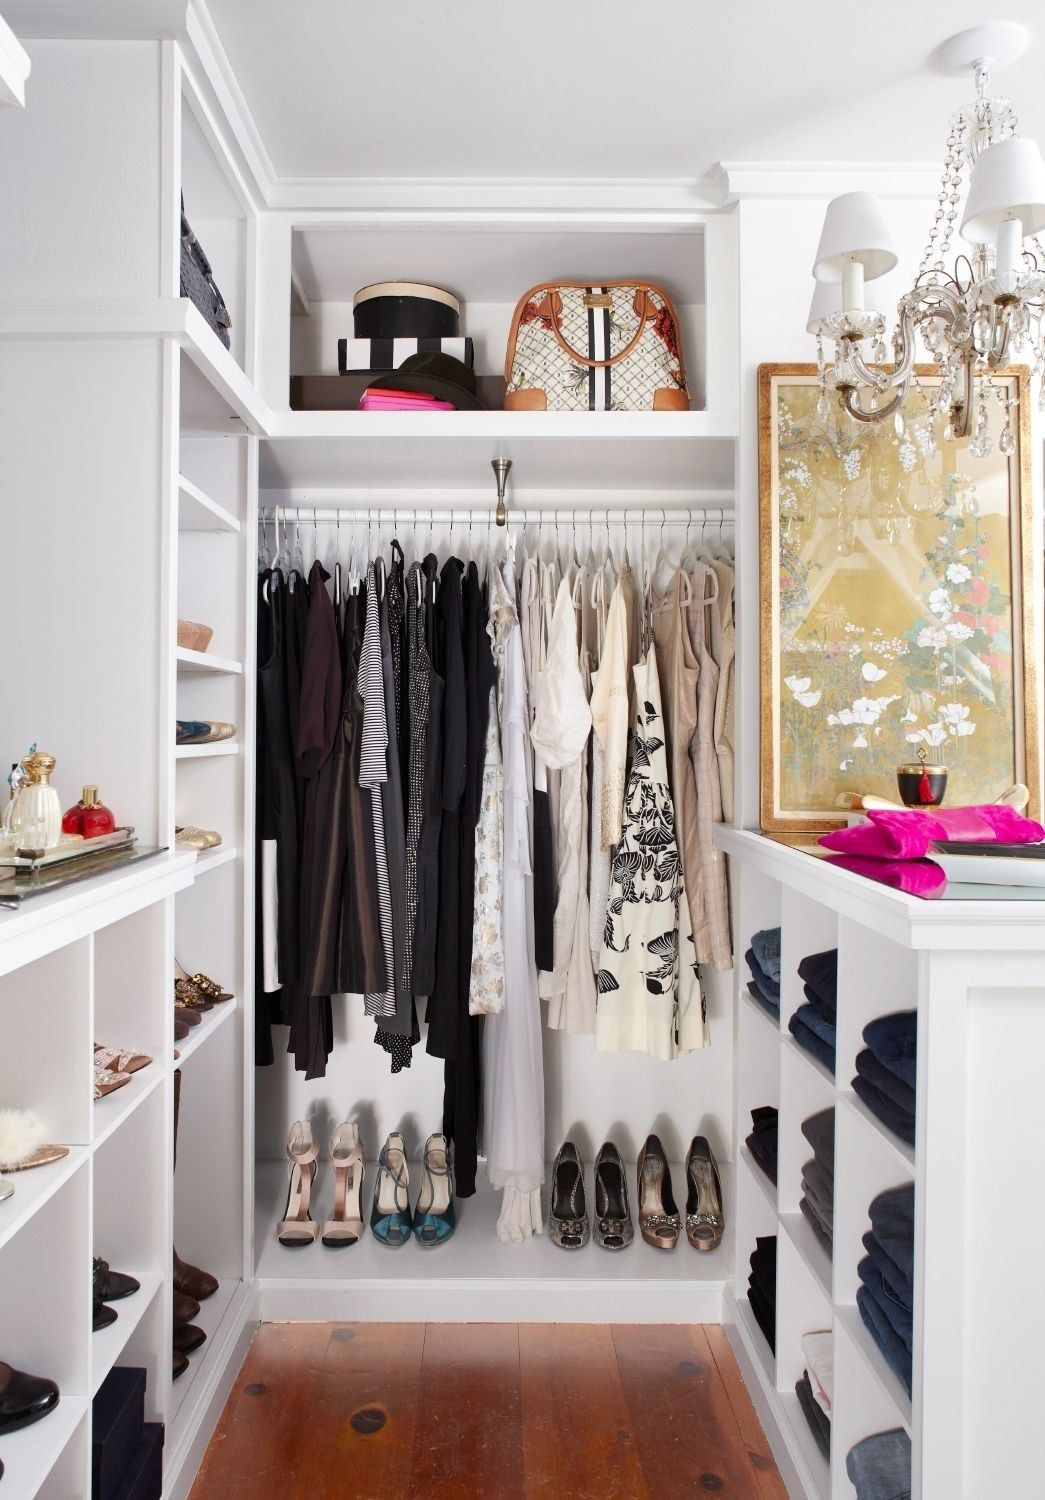 21 Awesome Closet Design Ideas For Your Home In 2020 Small